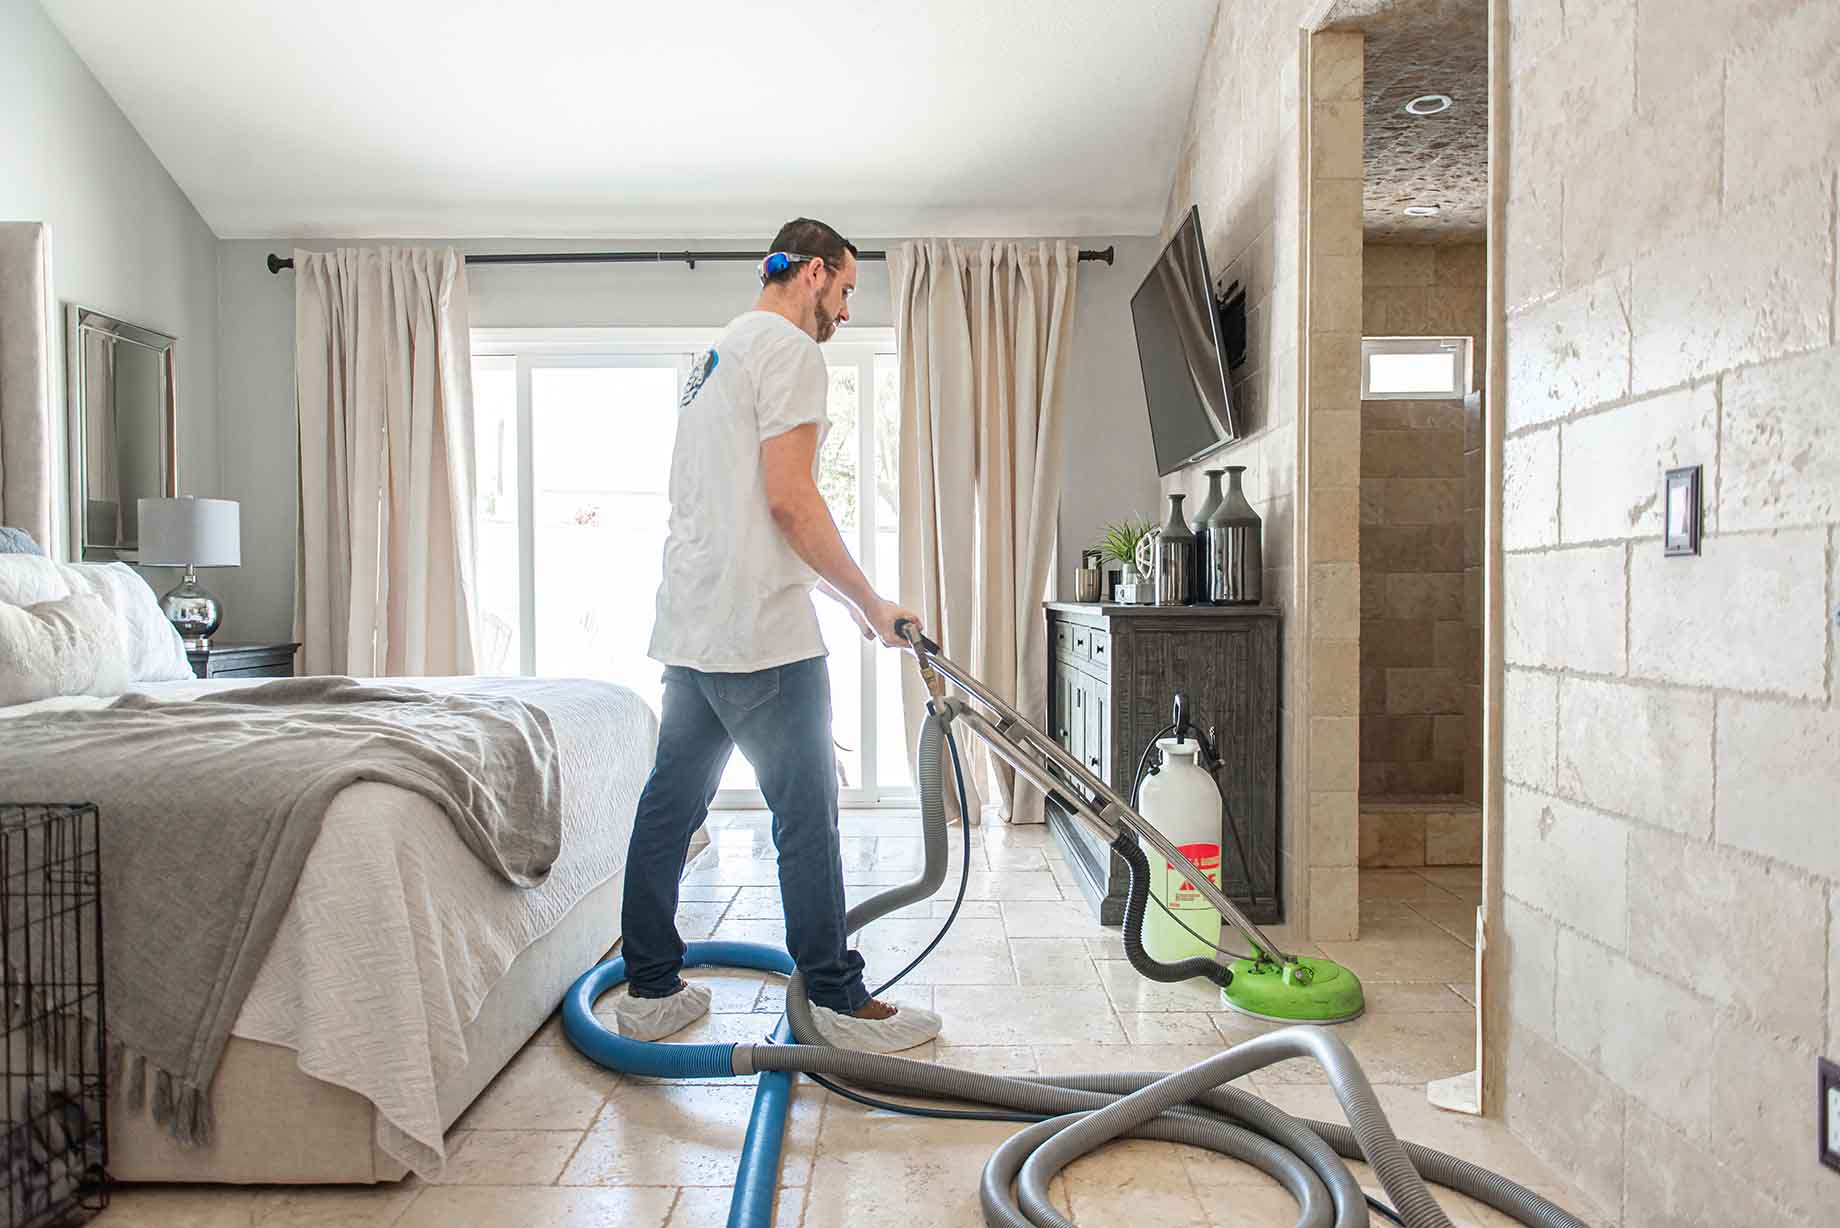 Cleanup your floor with Clean machine